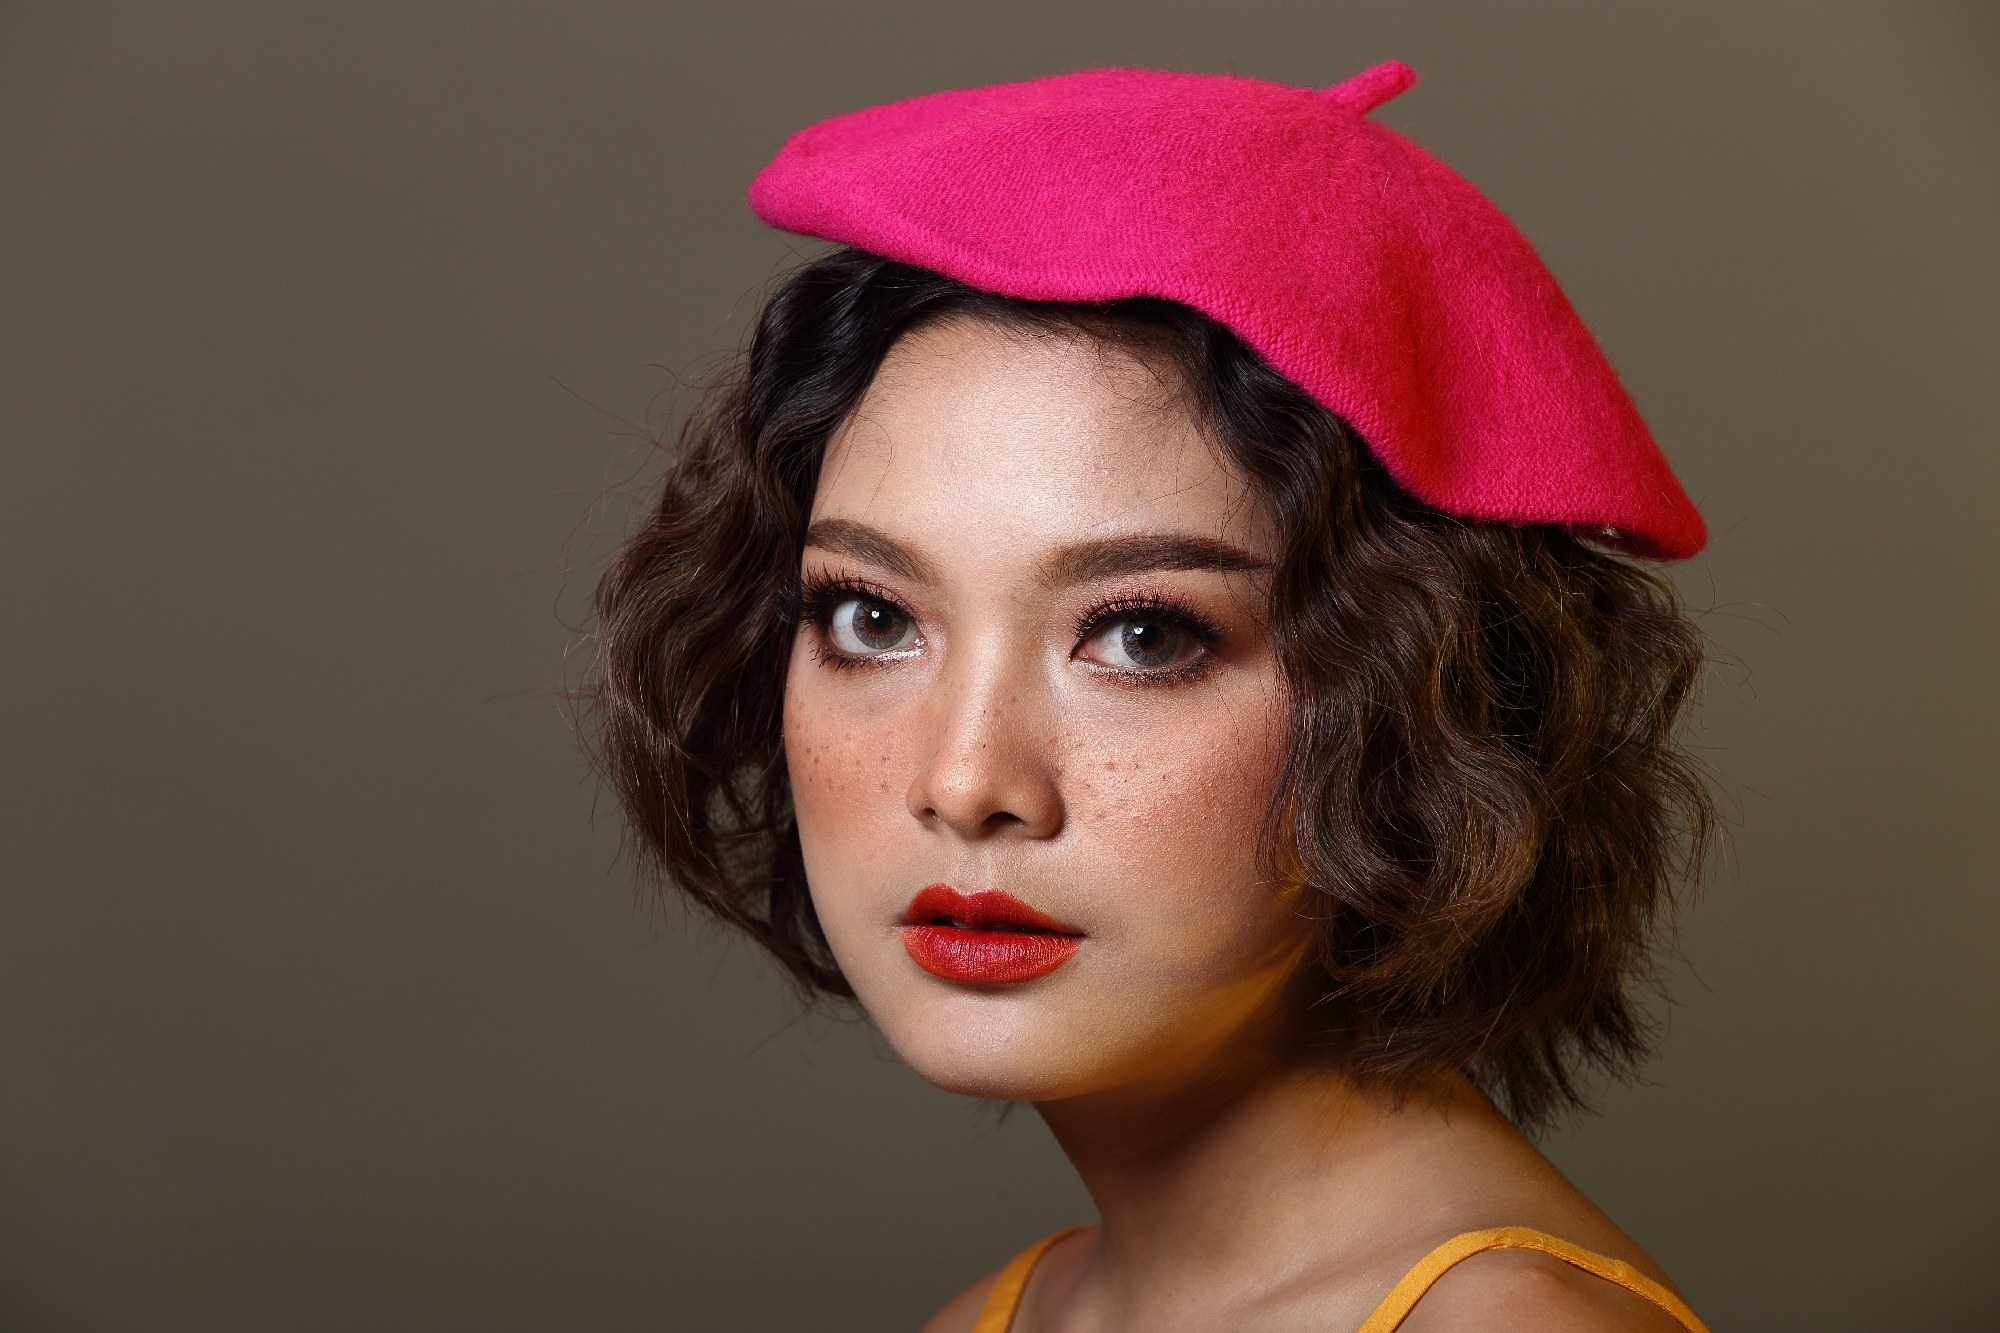 Vintage hairstyles - Finger waves Credit: Shutterstock